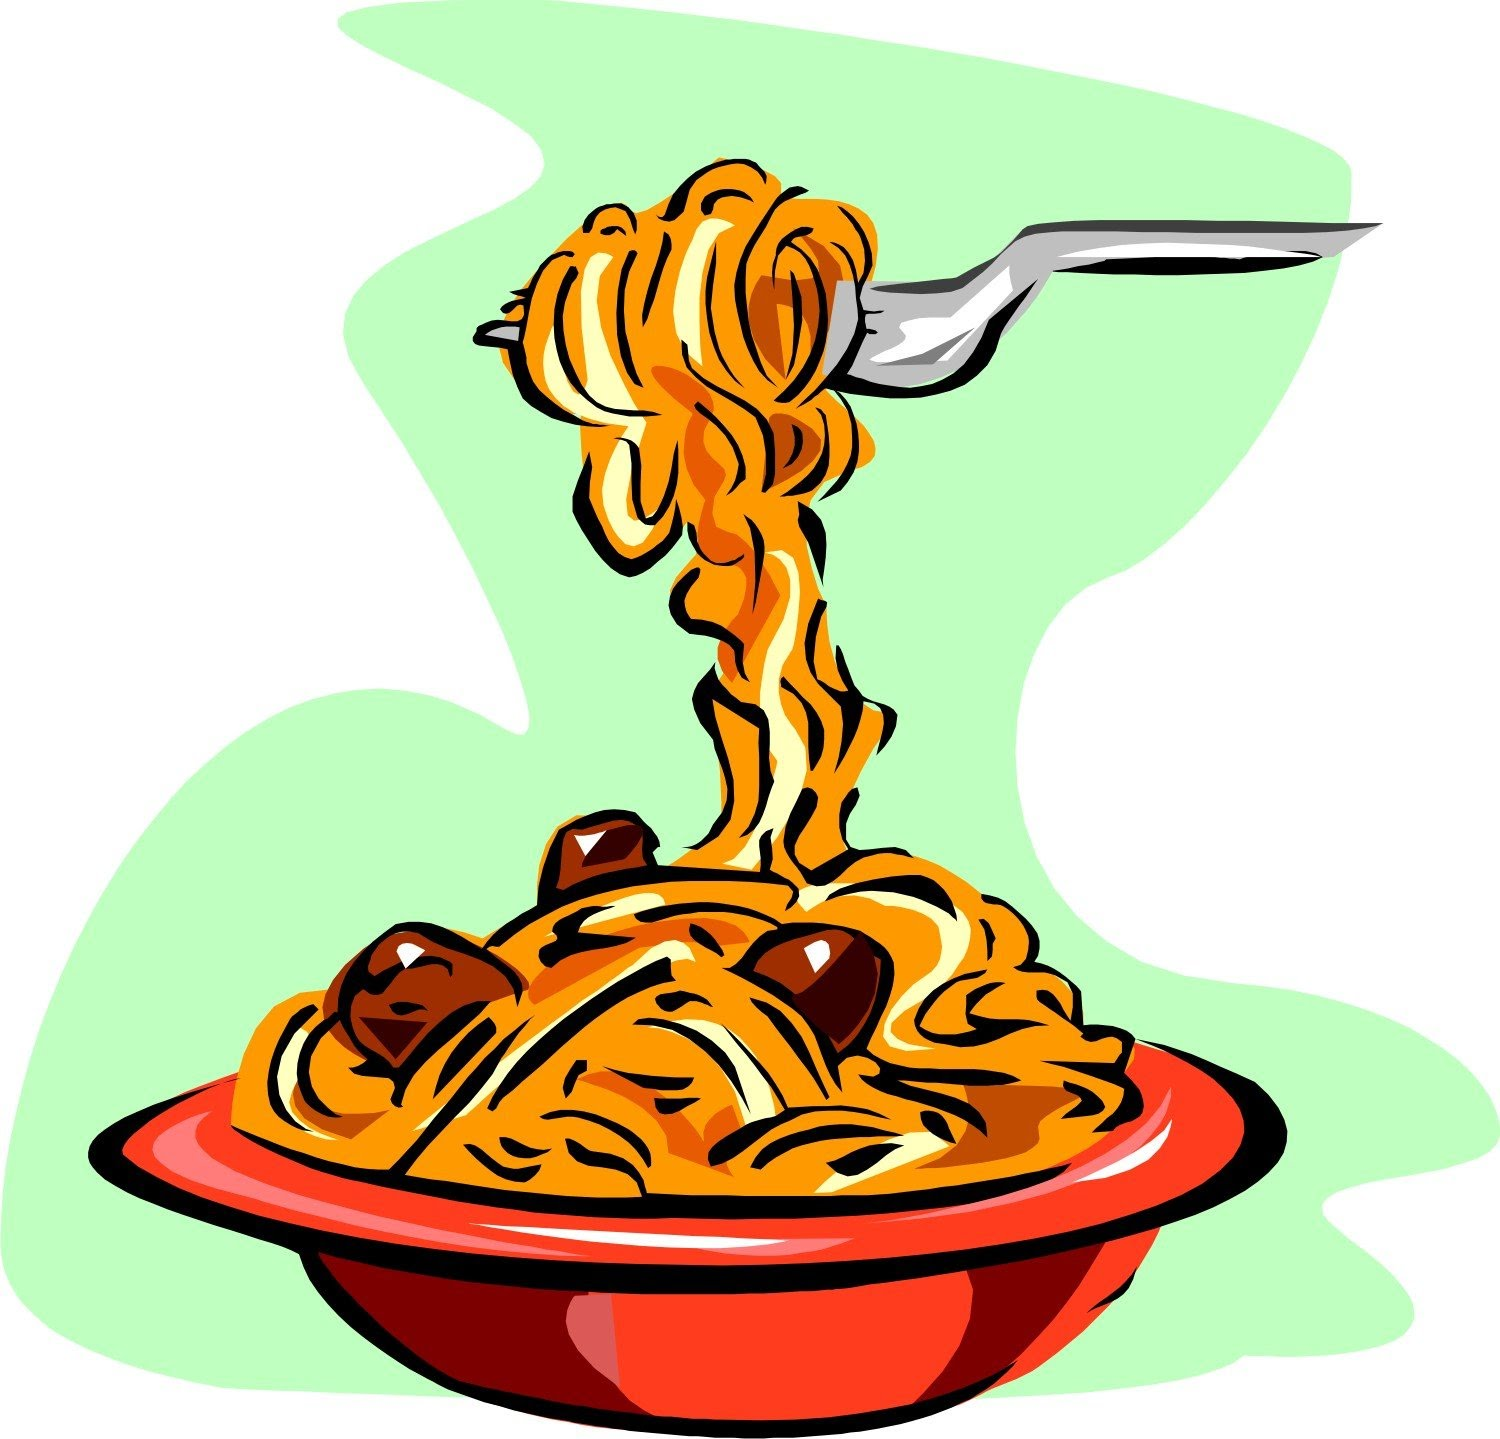 Spaghetti pasta clipart the cliparts databases jpg.